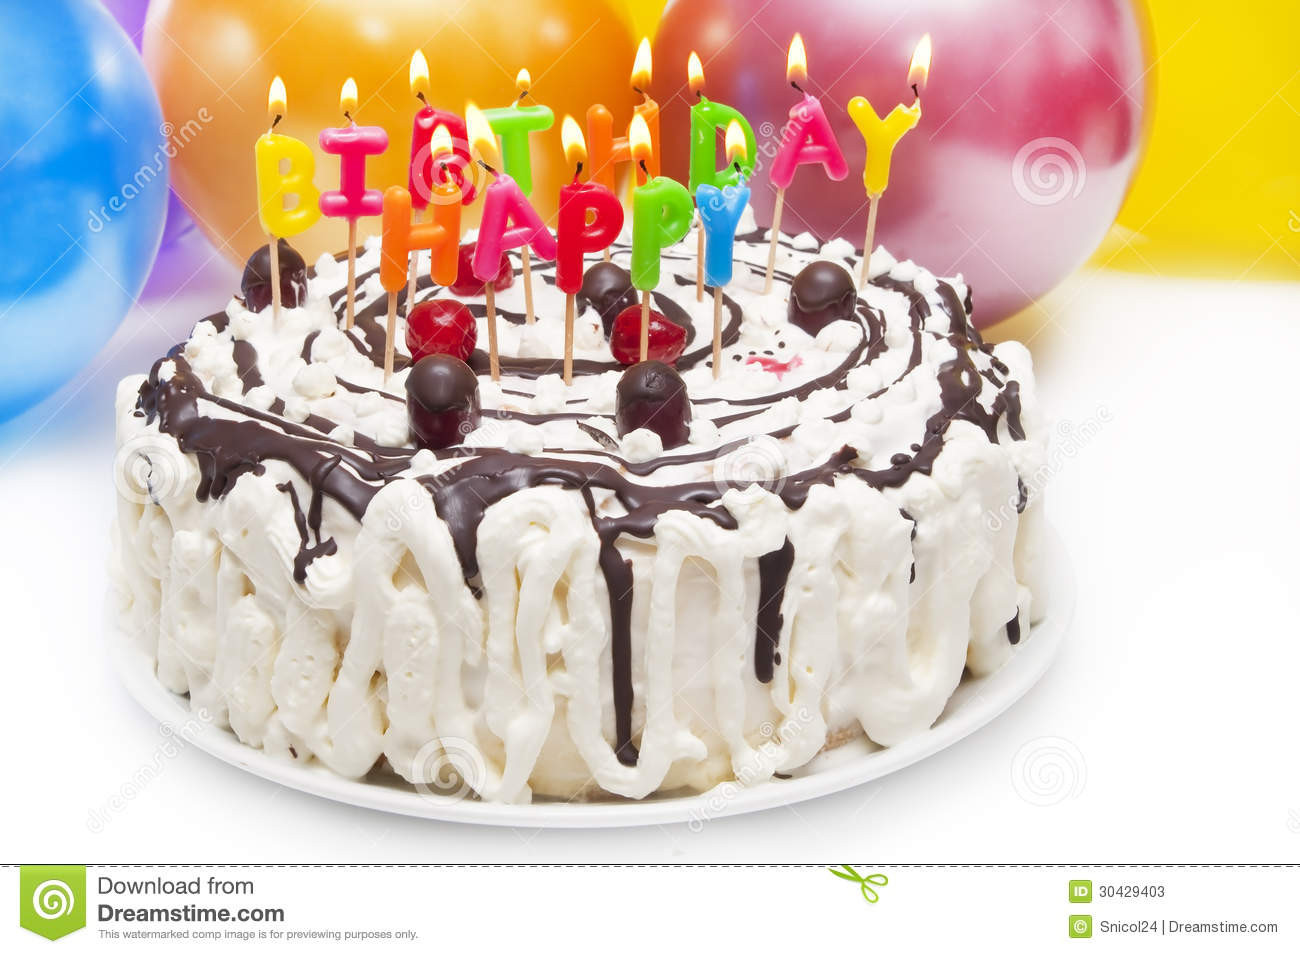 Birthday Cake With Candles And Balloons  Birthday Cake Stock s Image